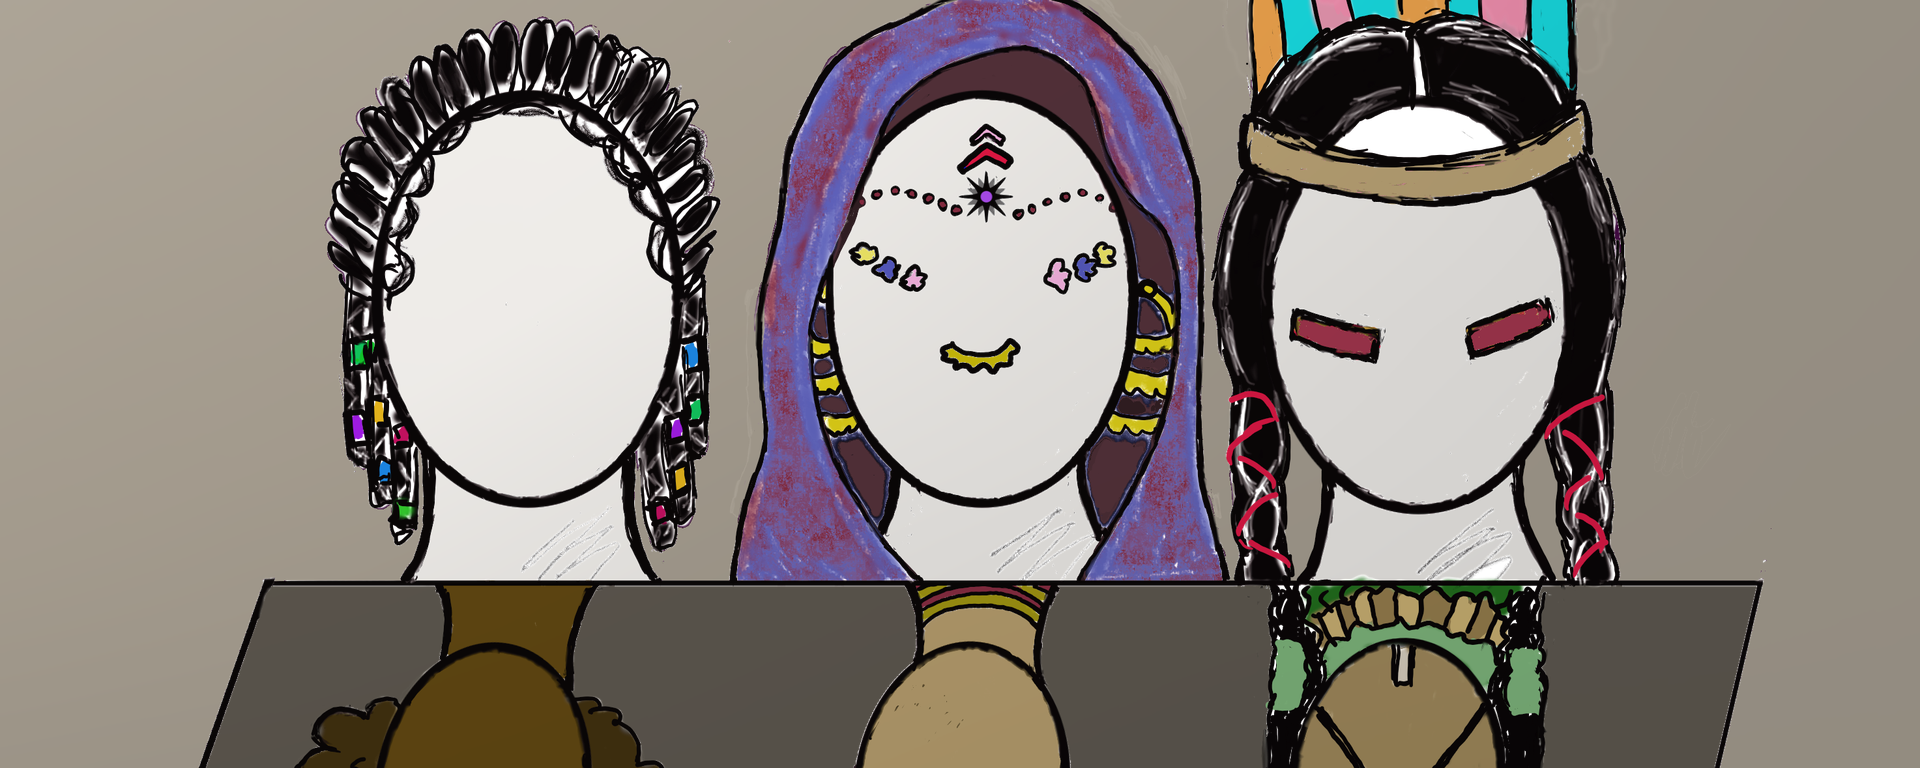 Charra drawing culture hispanic. Appreciation vs appropriation mexican